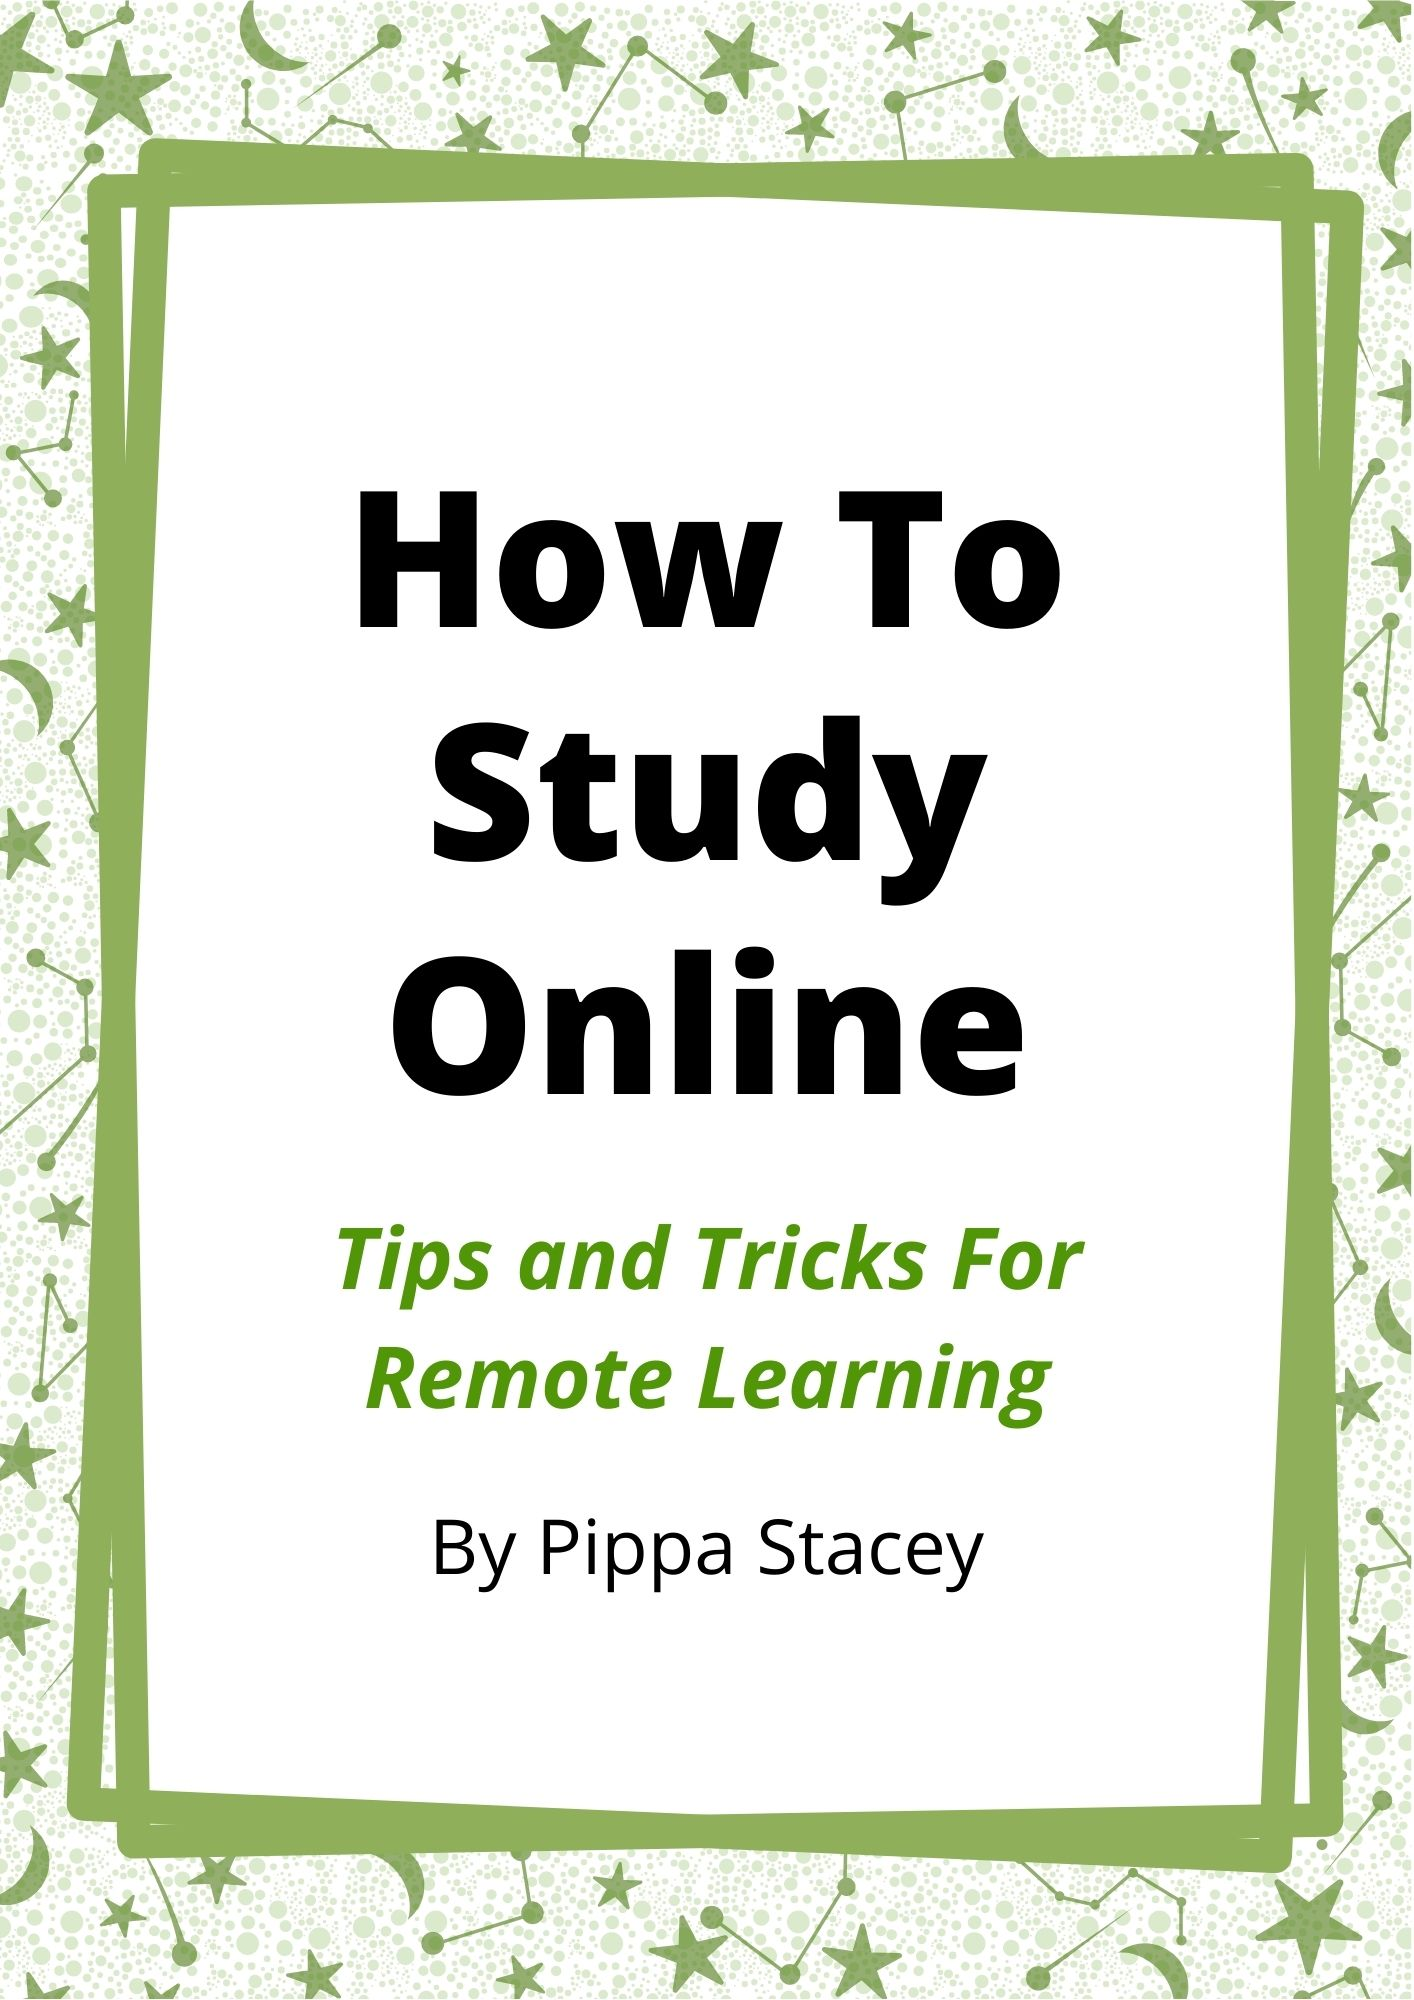 green and white cover image. title in black text: 'how to study online - tips and tricks for remote learning by pippa stacey'. border of white page is green with illustrated stars and cosmic-style images